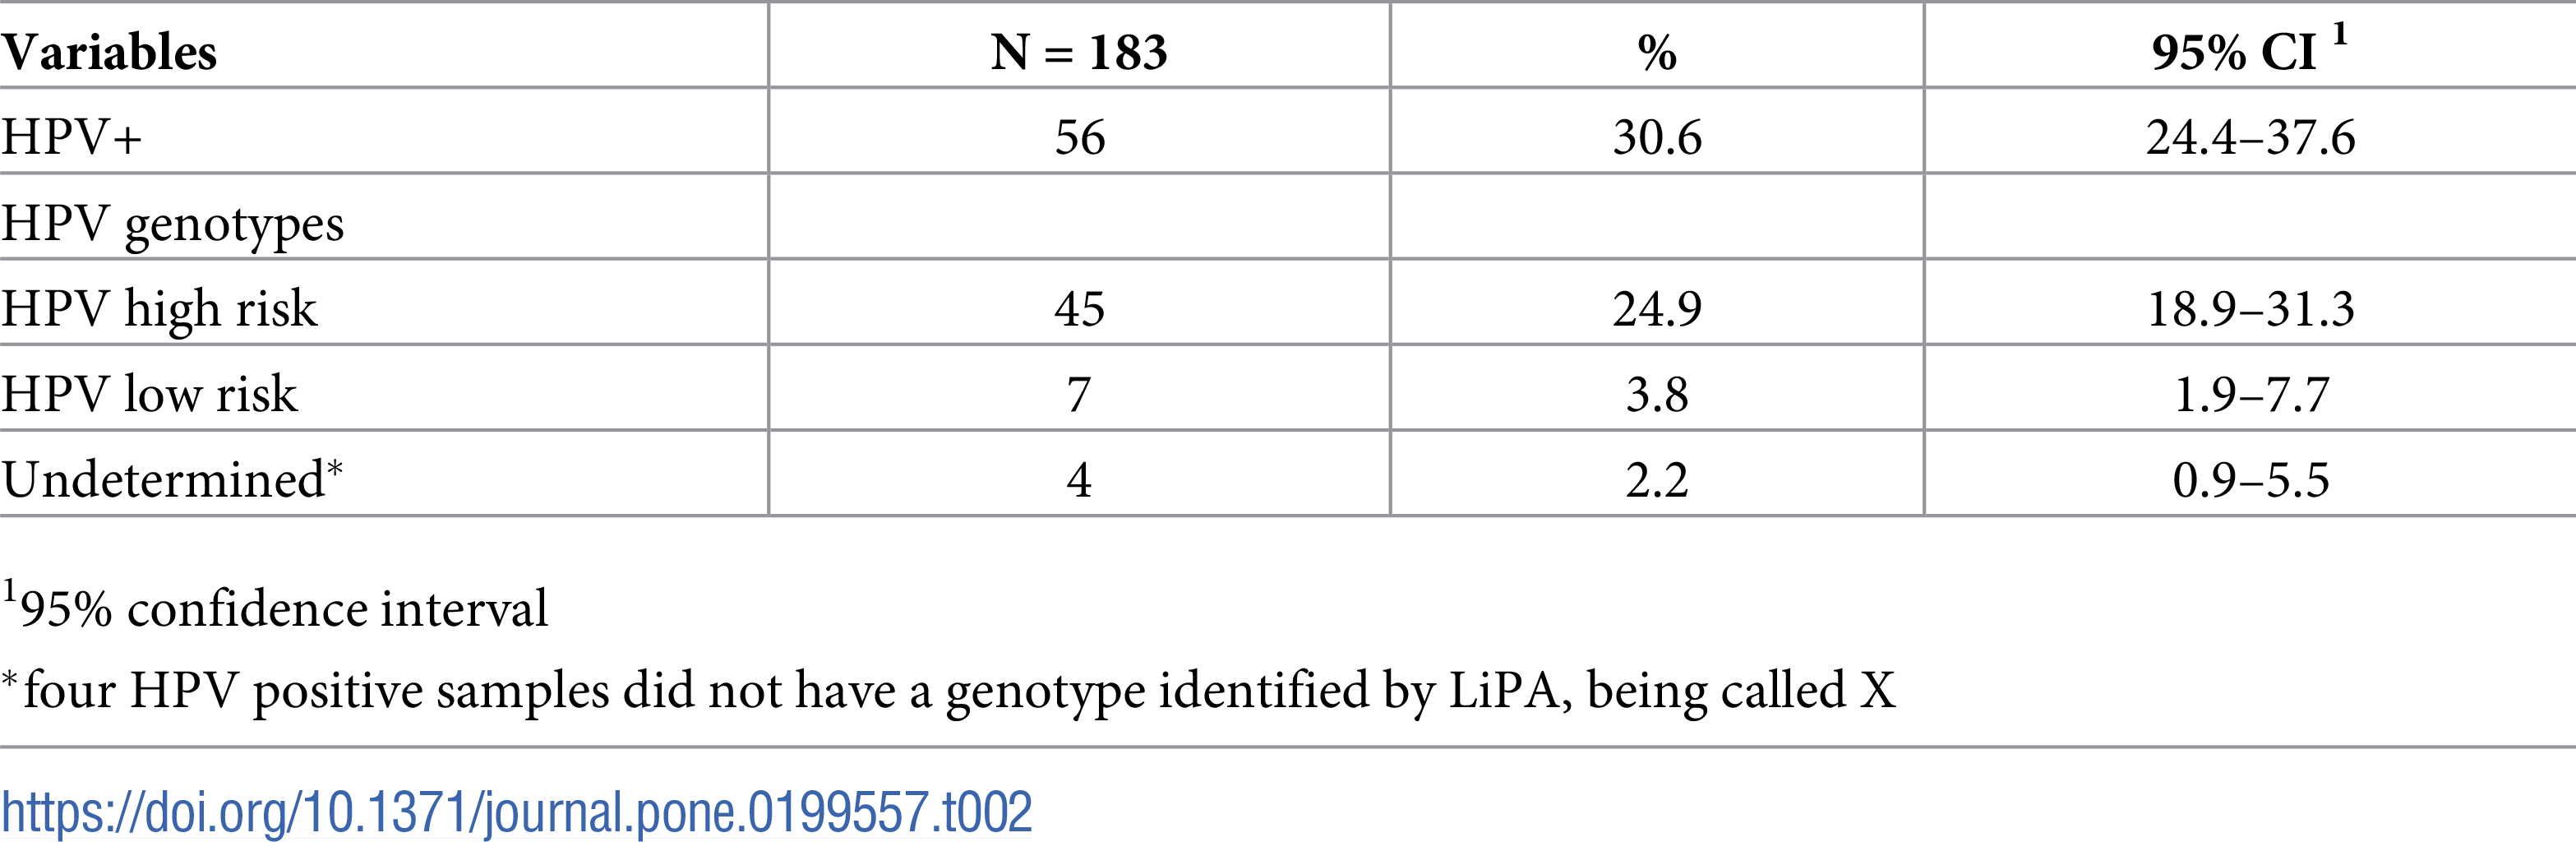 hpv 16 and 18 penile cancer